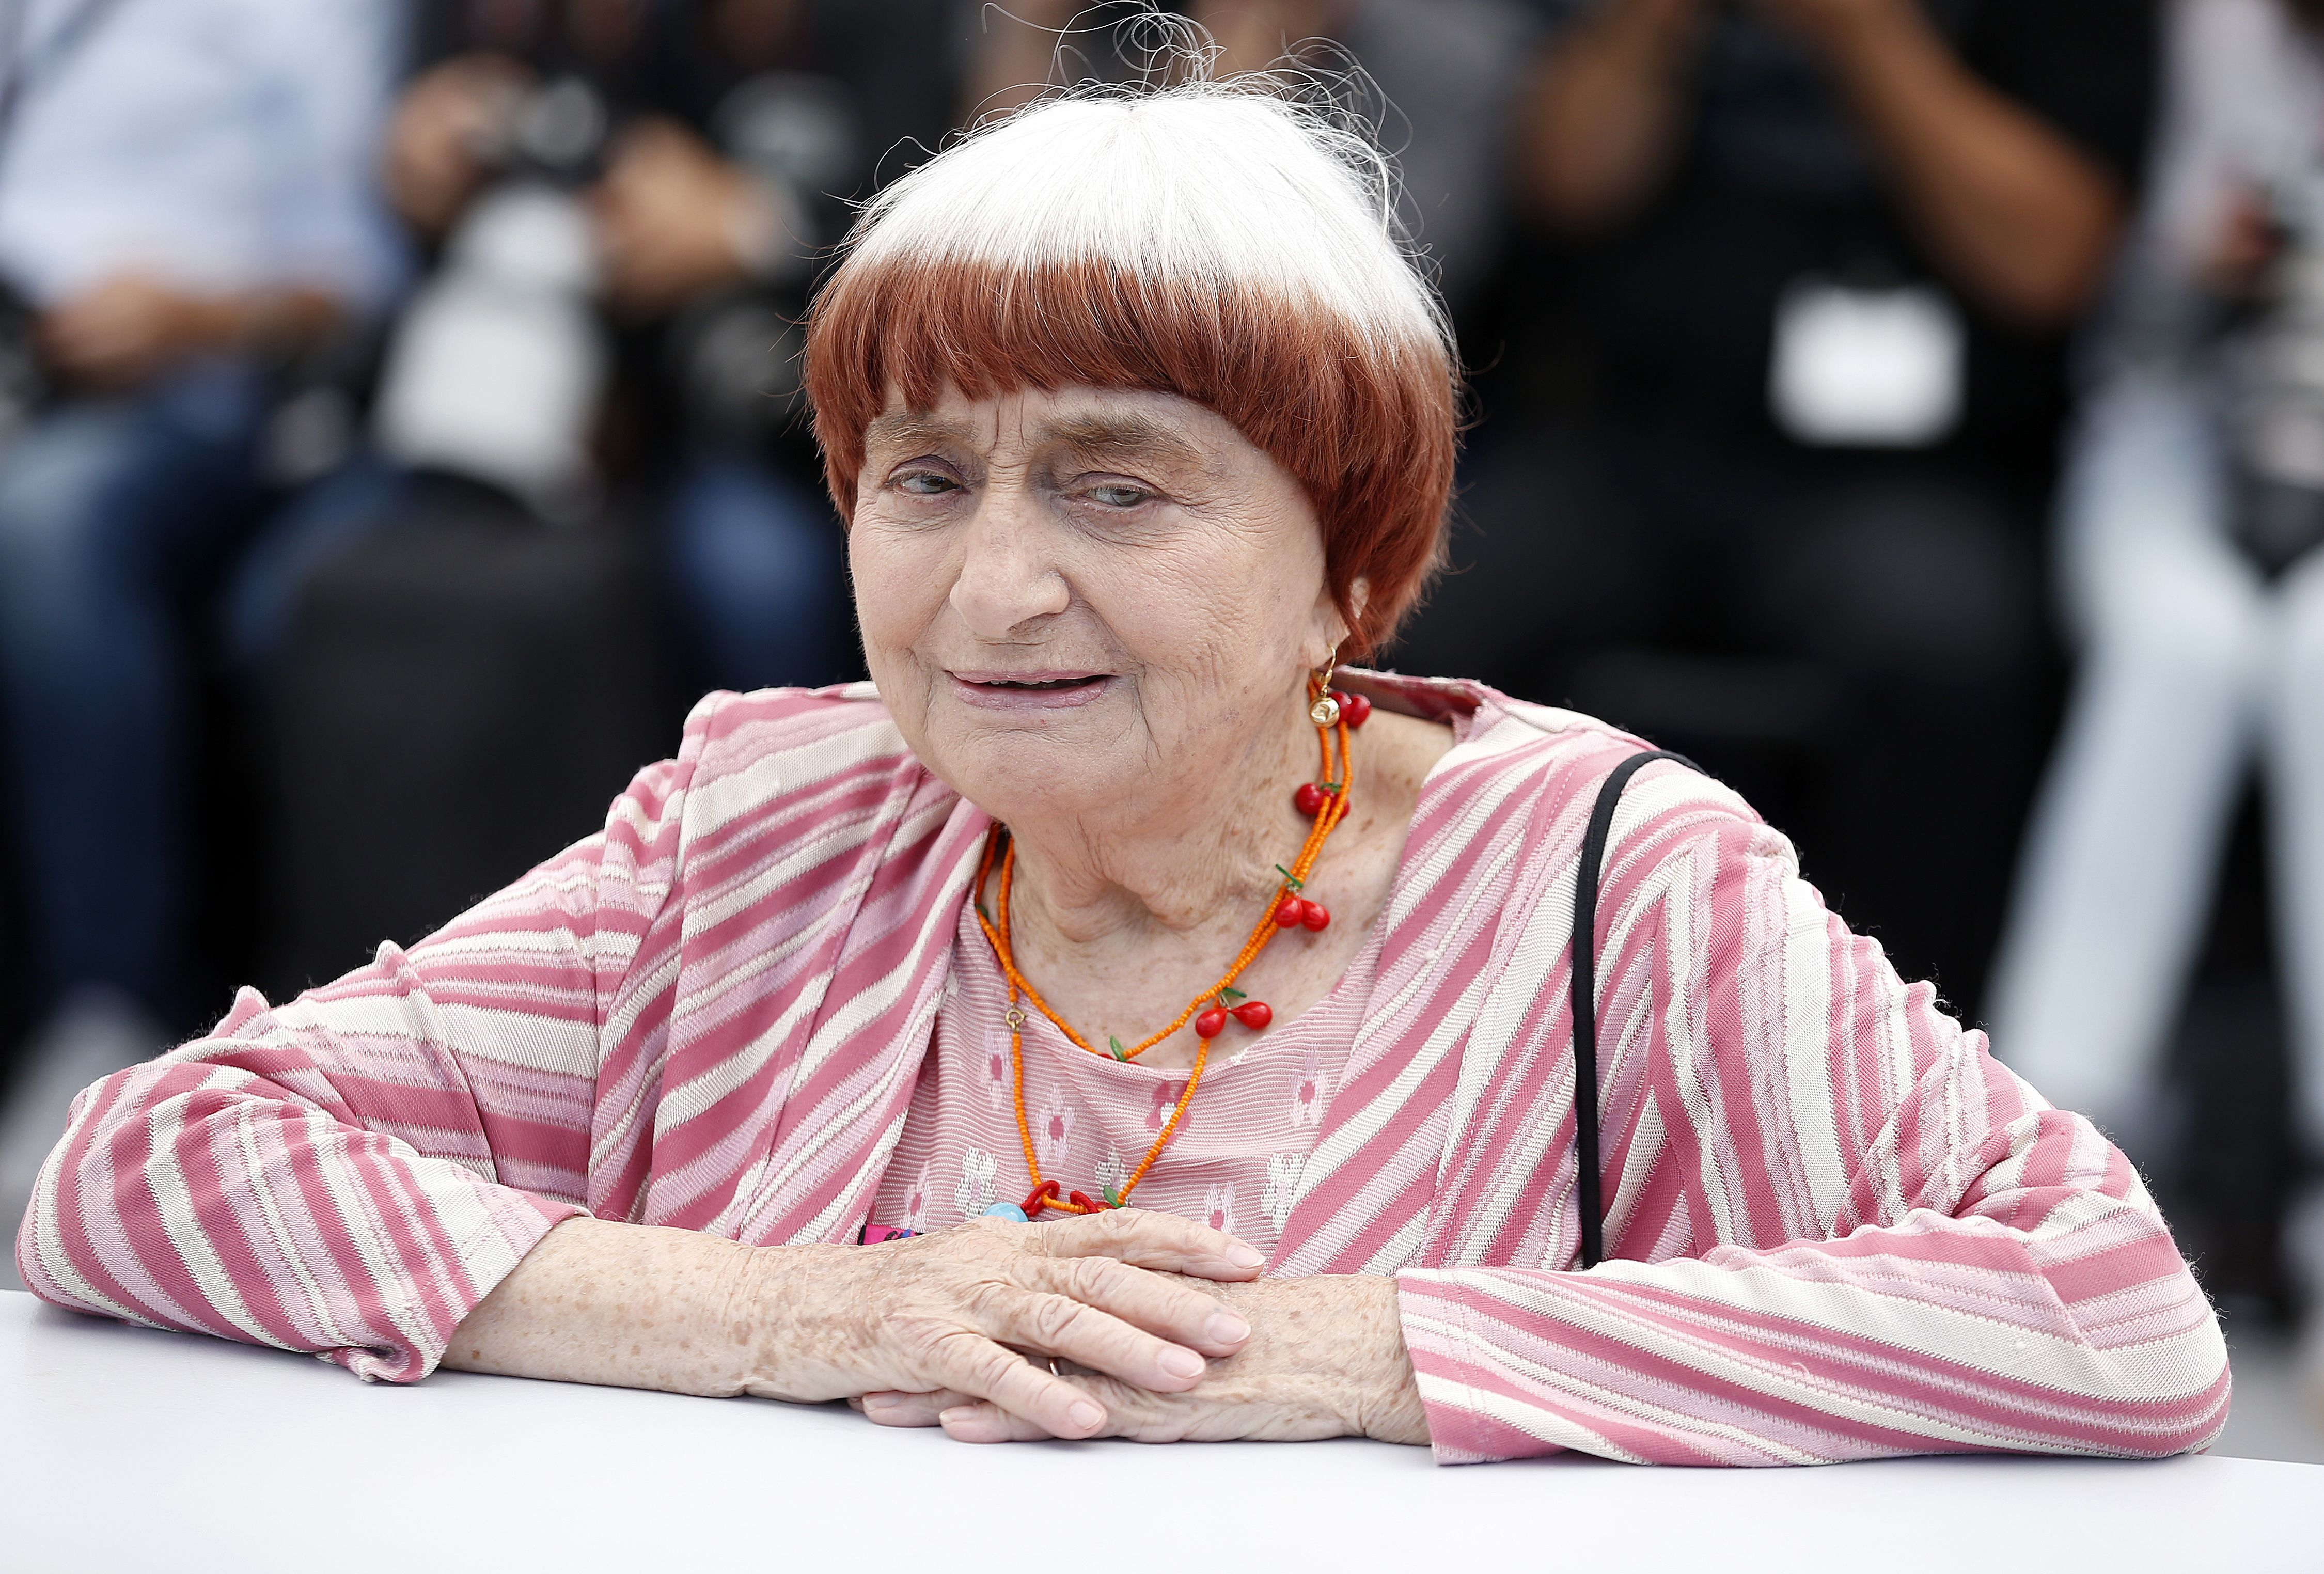 Agnes VardaVisages, Villages Photocall - 70th Cannes Film Festival, France - 19 May 2017 French director Agnes Varda poses during the photocall for 'Visages, Villages' (Faces Places)' at the 70th annual Cannes Film Festival, in Cannes, France, 19 May 2017. The movie is presented in the section Special Screenings of the festival which runs from 17 to 28 May.